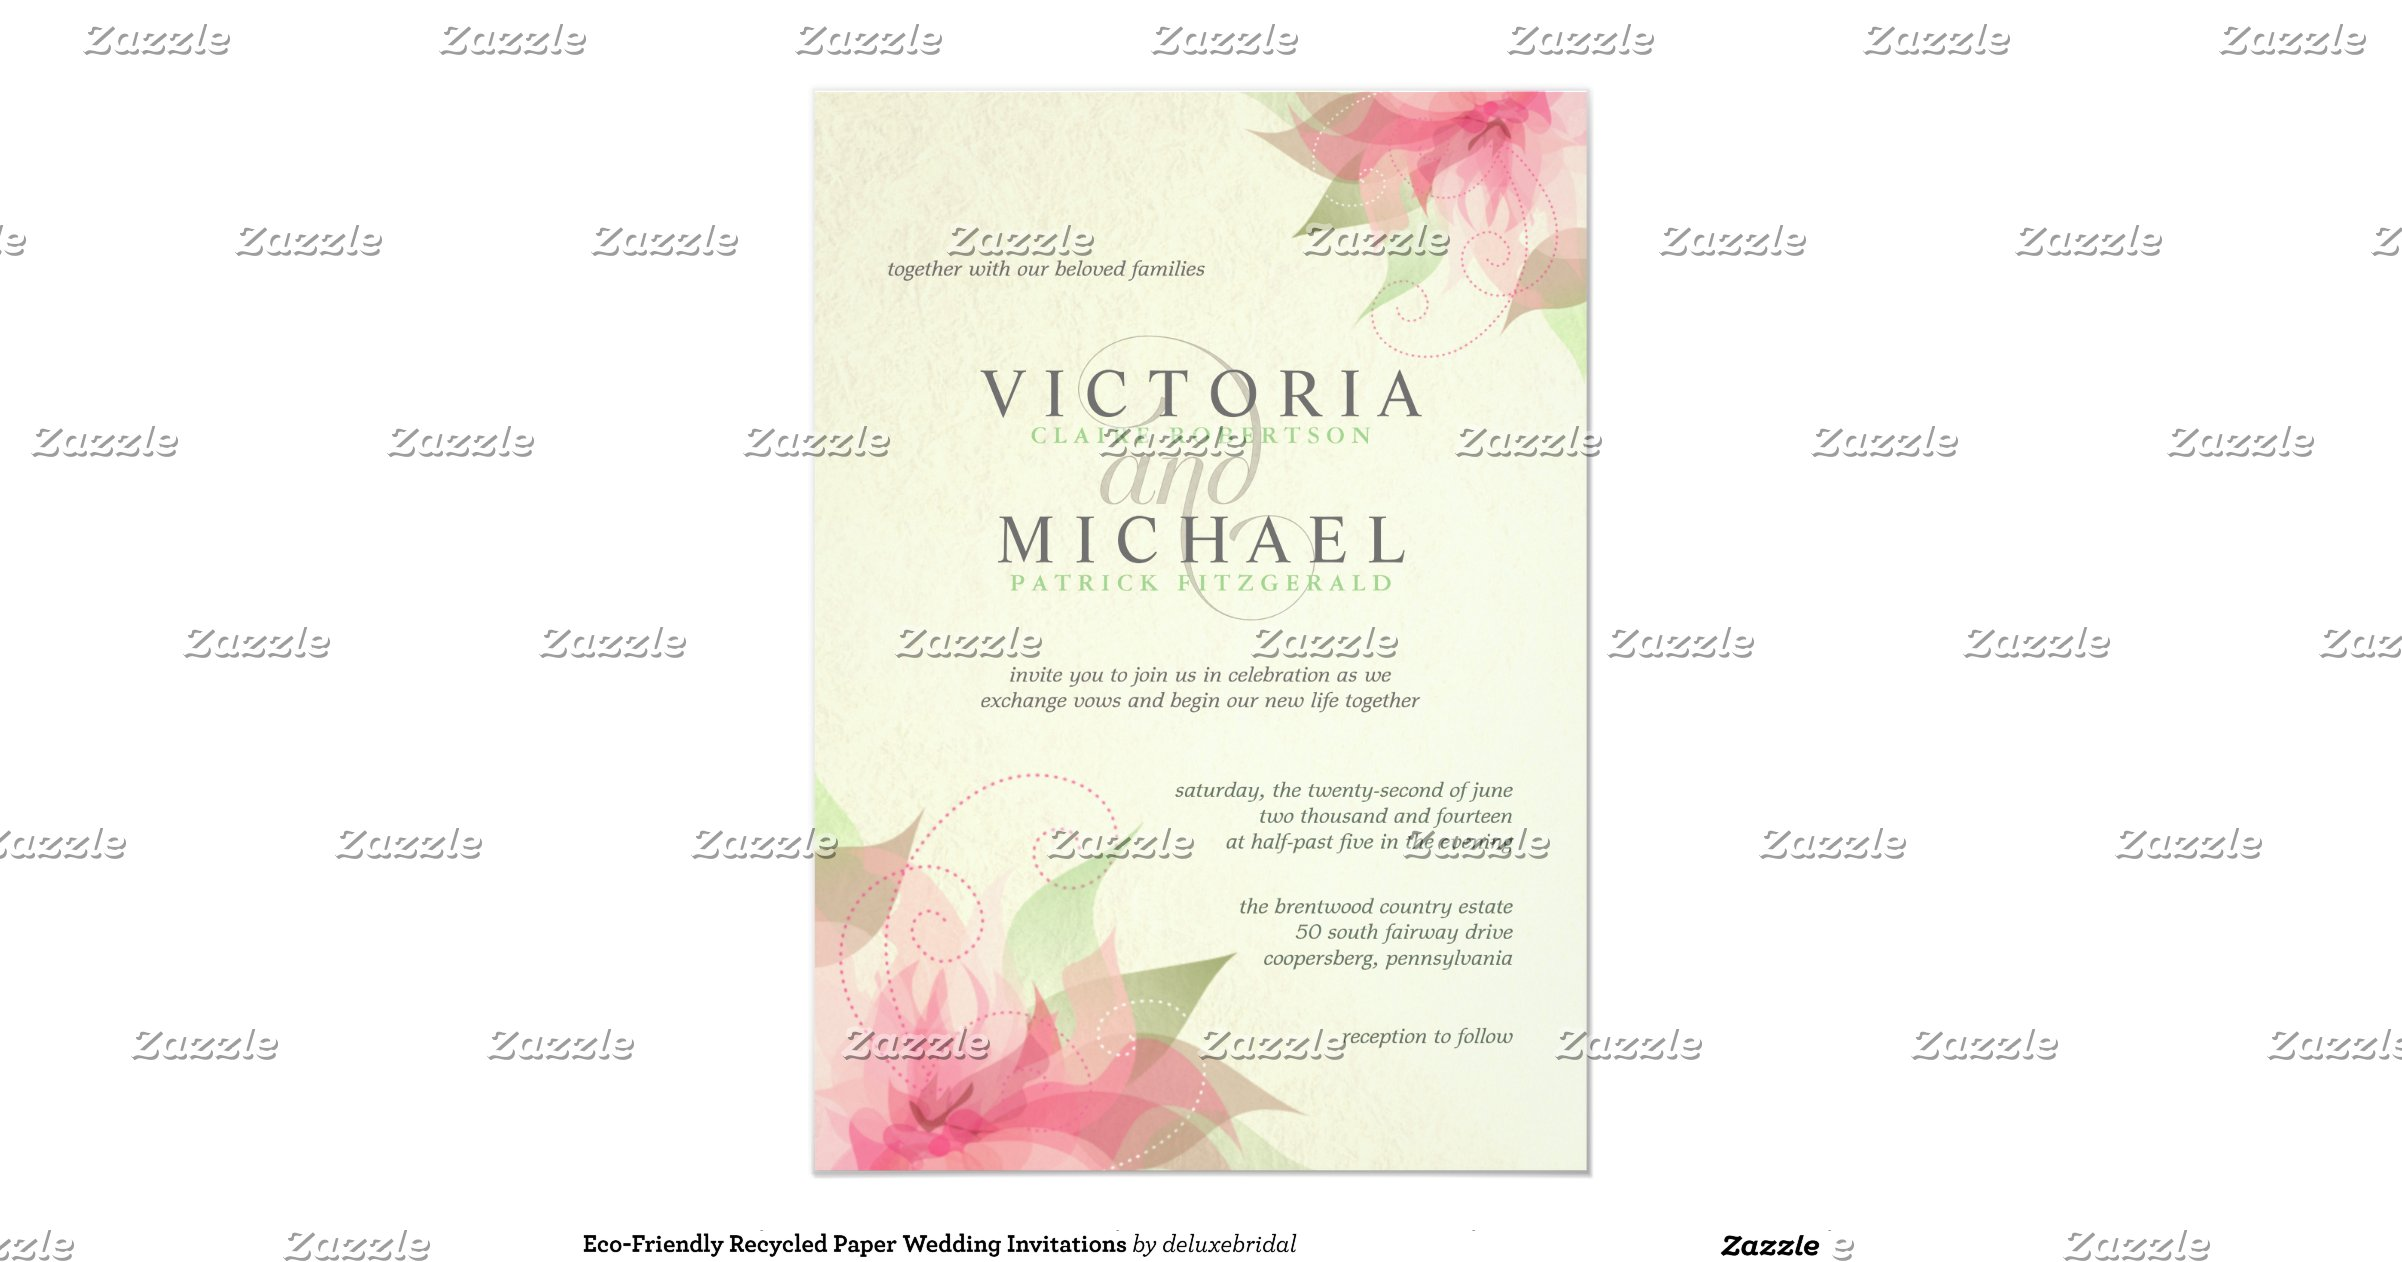 Wedding Invitations Recycled Paper: Eco_friendly_recycled_paper_wedding_invitations